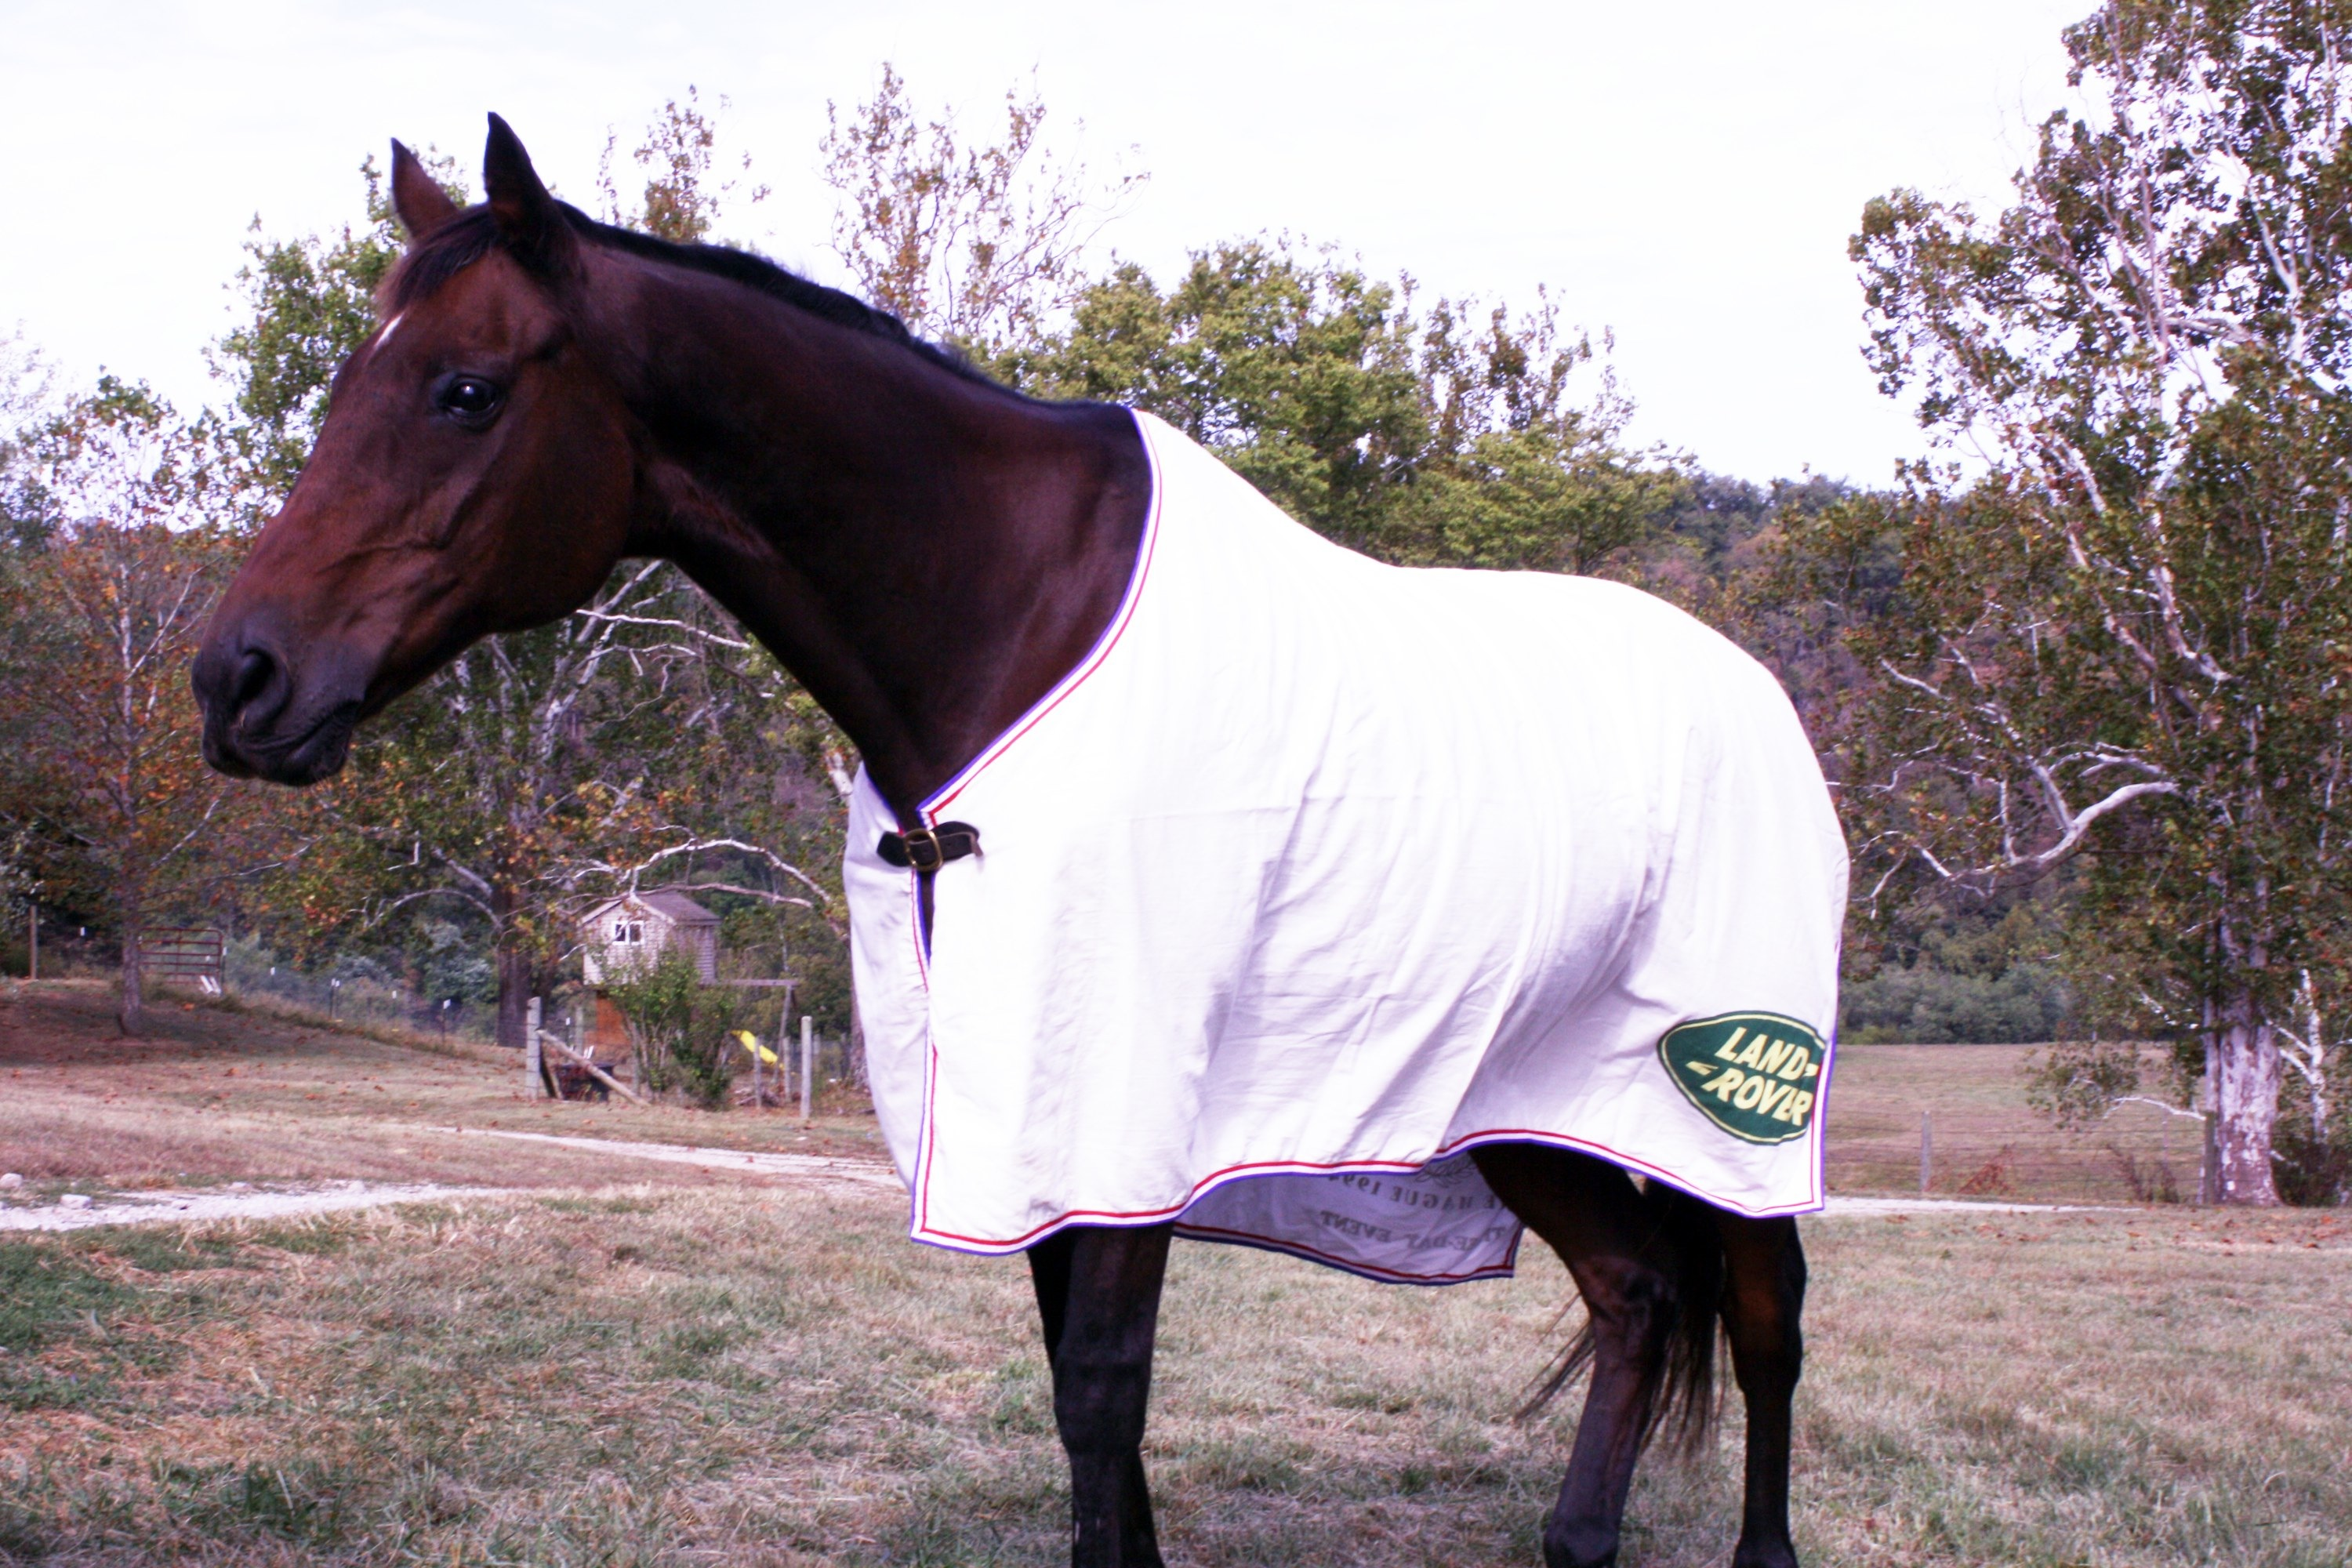 Molokai (1983–2013) partnered with Dorothy in the 1990s, shown here wearing his 1994 WEG silver medal sheet. A failed racehorse (career earnings of $720), Mo galloped and jumped into equestrian history books with Dorothy. (Photo by John Crowell)